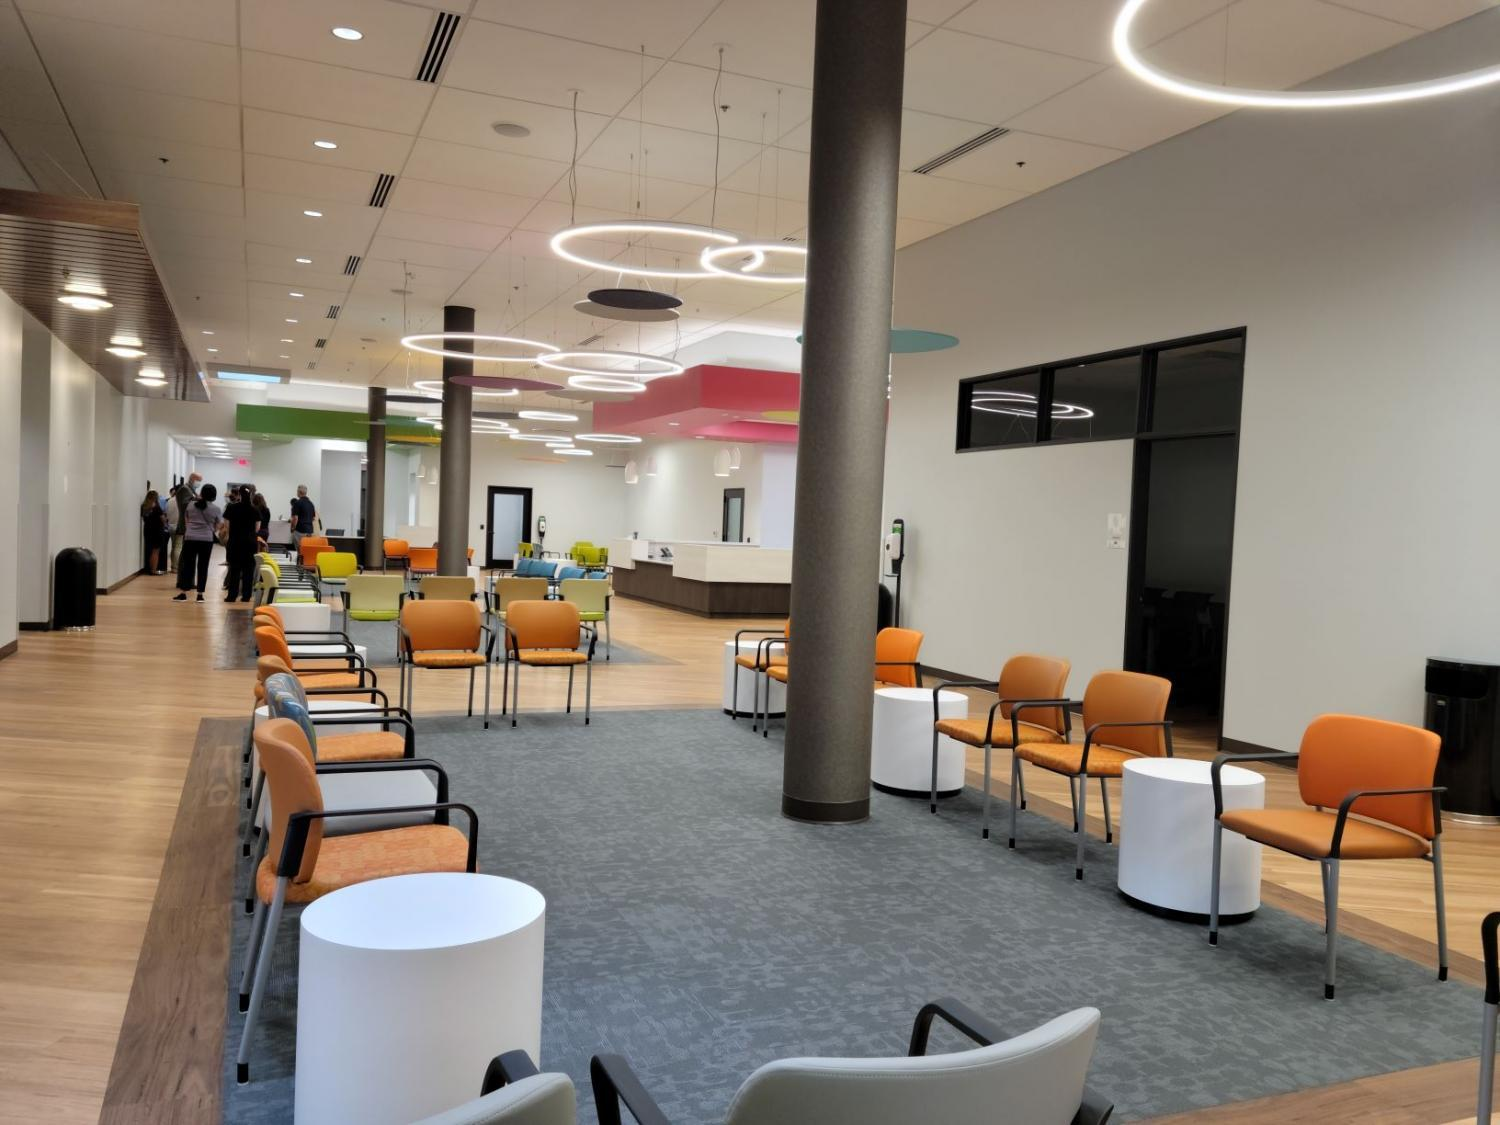 new waiting room area with chairs